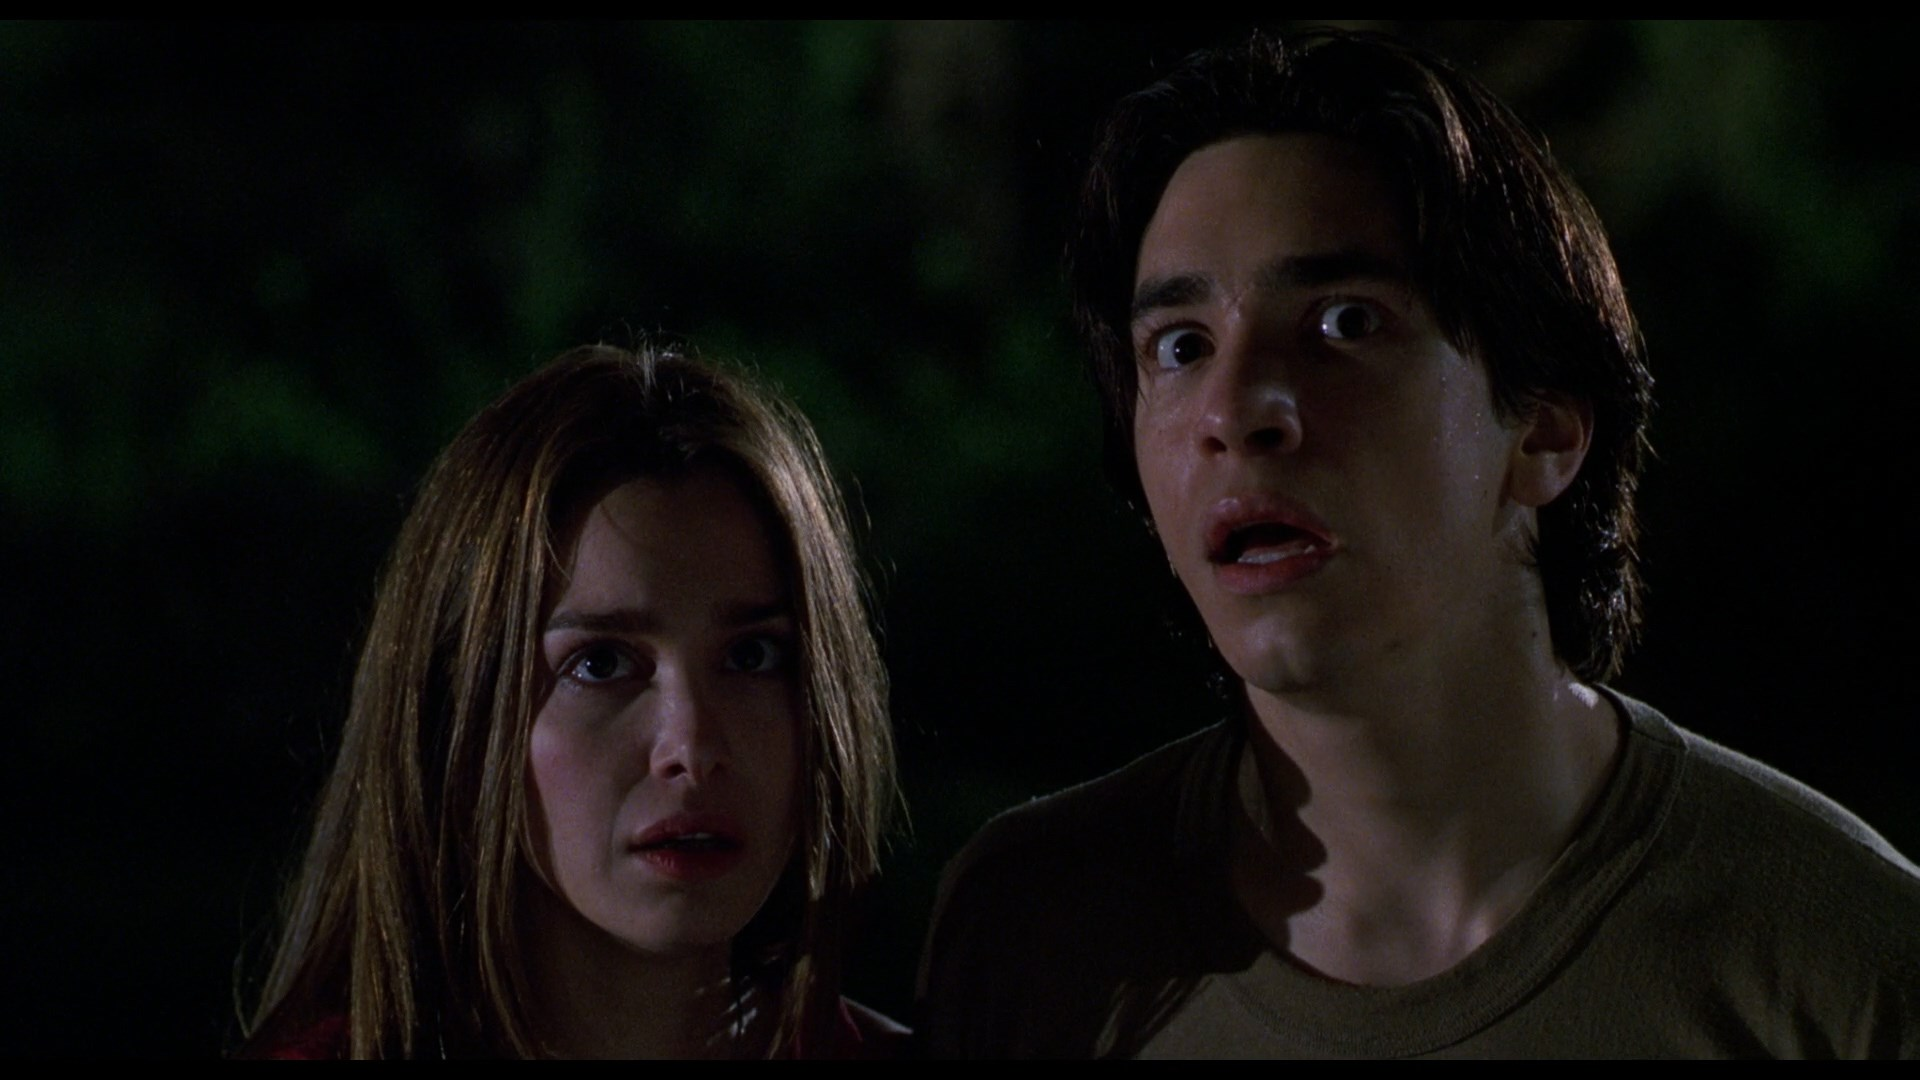 Jeepers_Creepers_Still_7